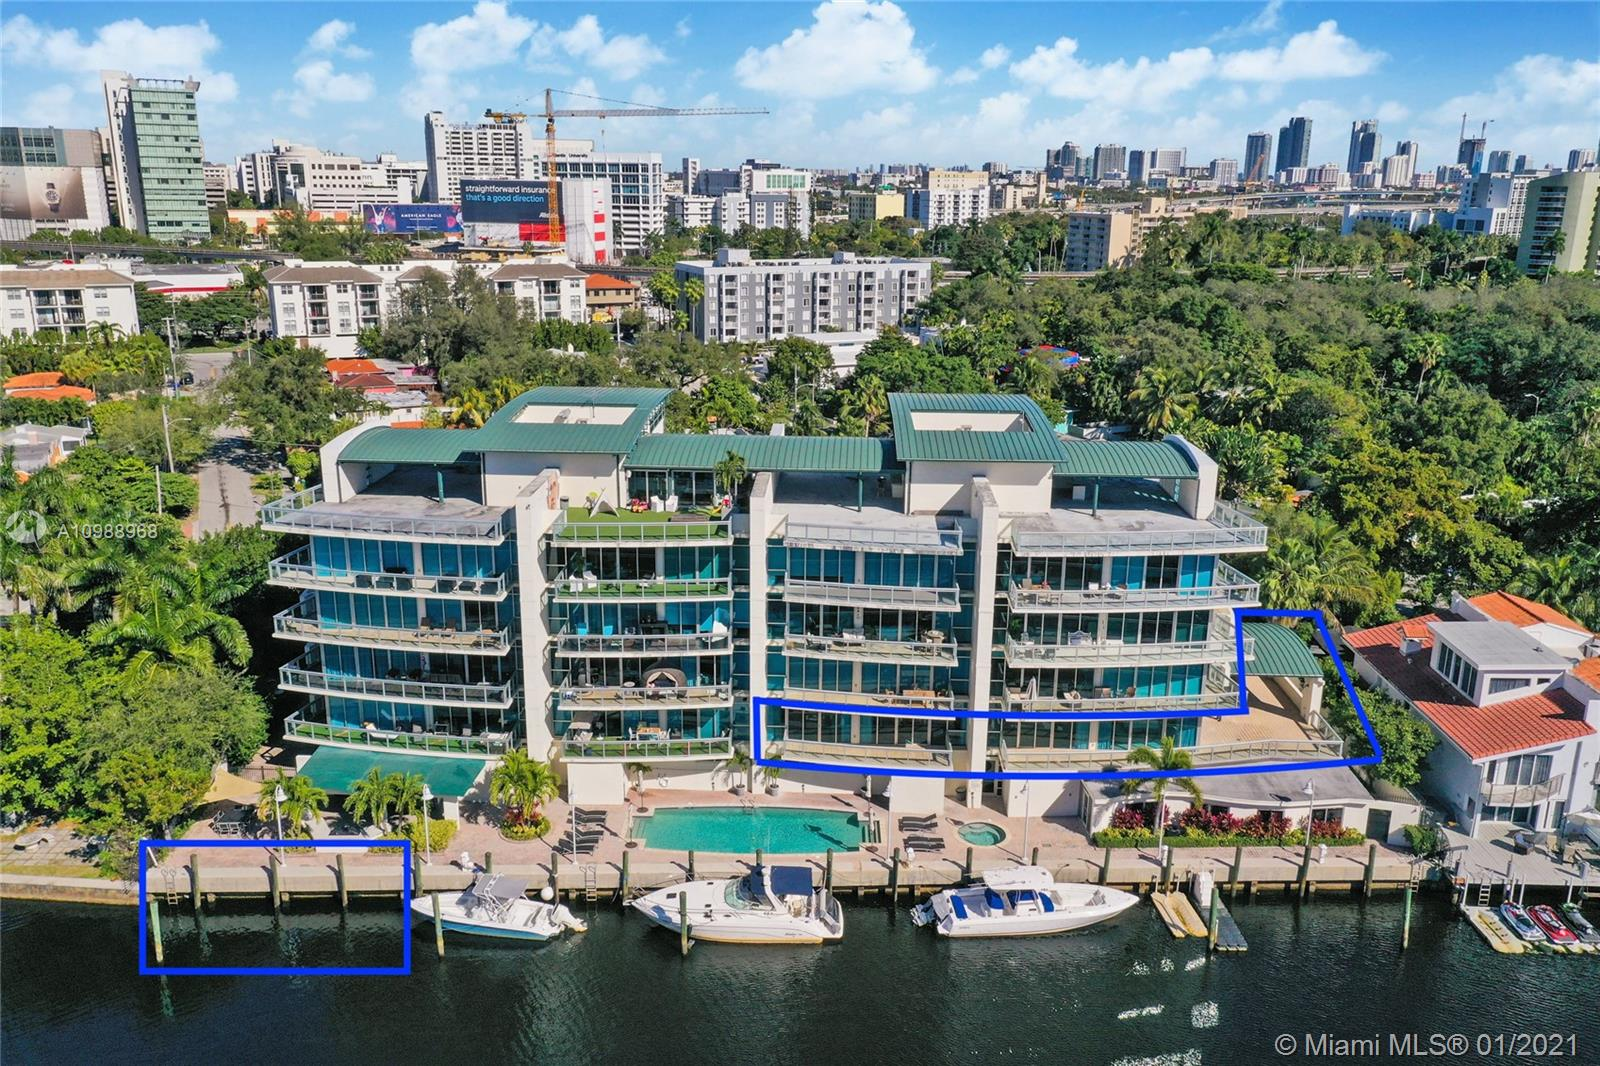 Experience an incredible opportunity to live on the Miami River in a  Luxury waterfront boutique Building located in the Historic Spring Garden. Designed by L. Revuelta, in 2007 w/only 16 private units, this Corner Flow thru apartment offers both River & city views. This stunning renovated residence boasts expansive glass walls throughout w/10ft ceilings, one-of-a-kind kitchen w/gas appliances, 6 Bed/6 baths, converted 4th bed + media room which could be easily put back as 6 bed, 2 master beds w/en-suite baths, all bedrooms have walk-in closets & private balconies, electric window treatments throughout, oversized 2265 SF wrap around terrace w/partially covered patio, Private lobby, 4 parking spaces, Private boat slip 45Ft, 6996 SF in total. 24hr Monitored security, Pool, jacuzzi & gym.